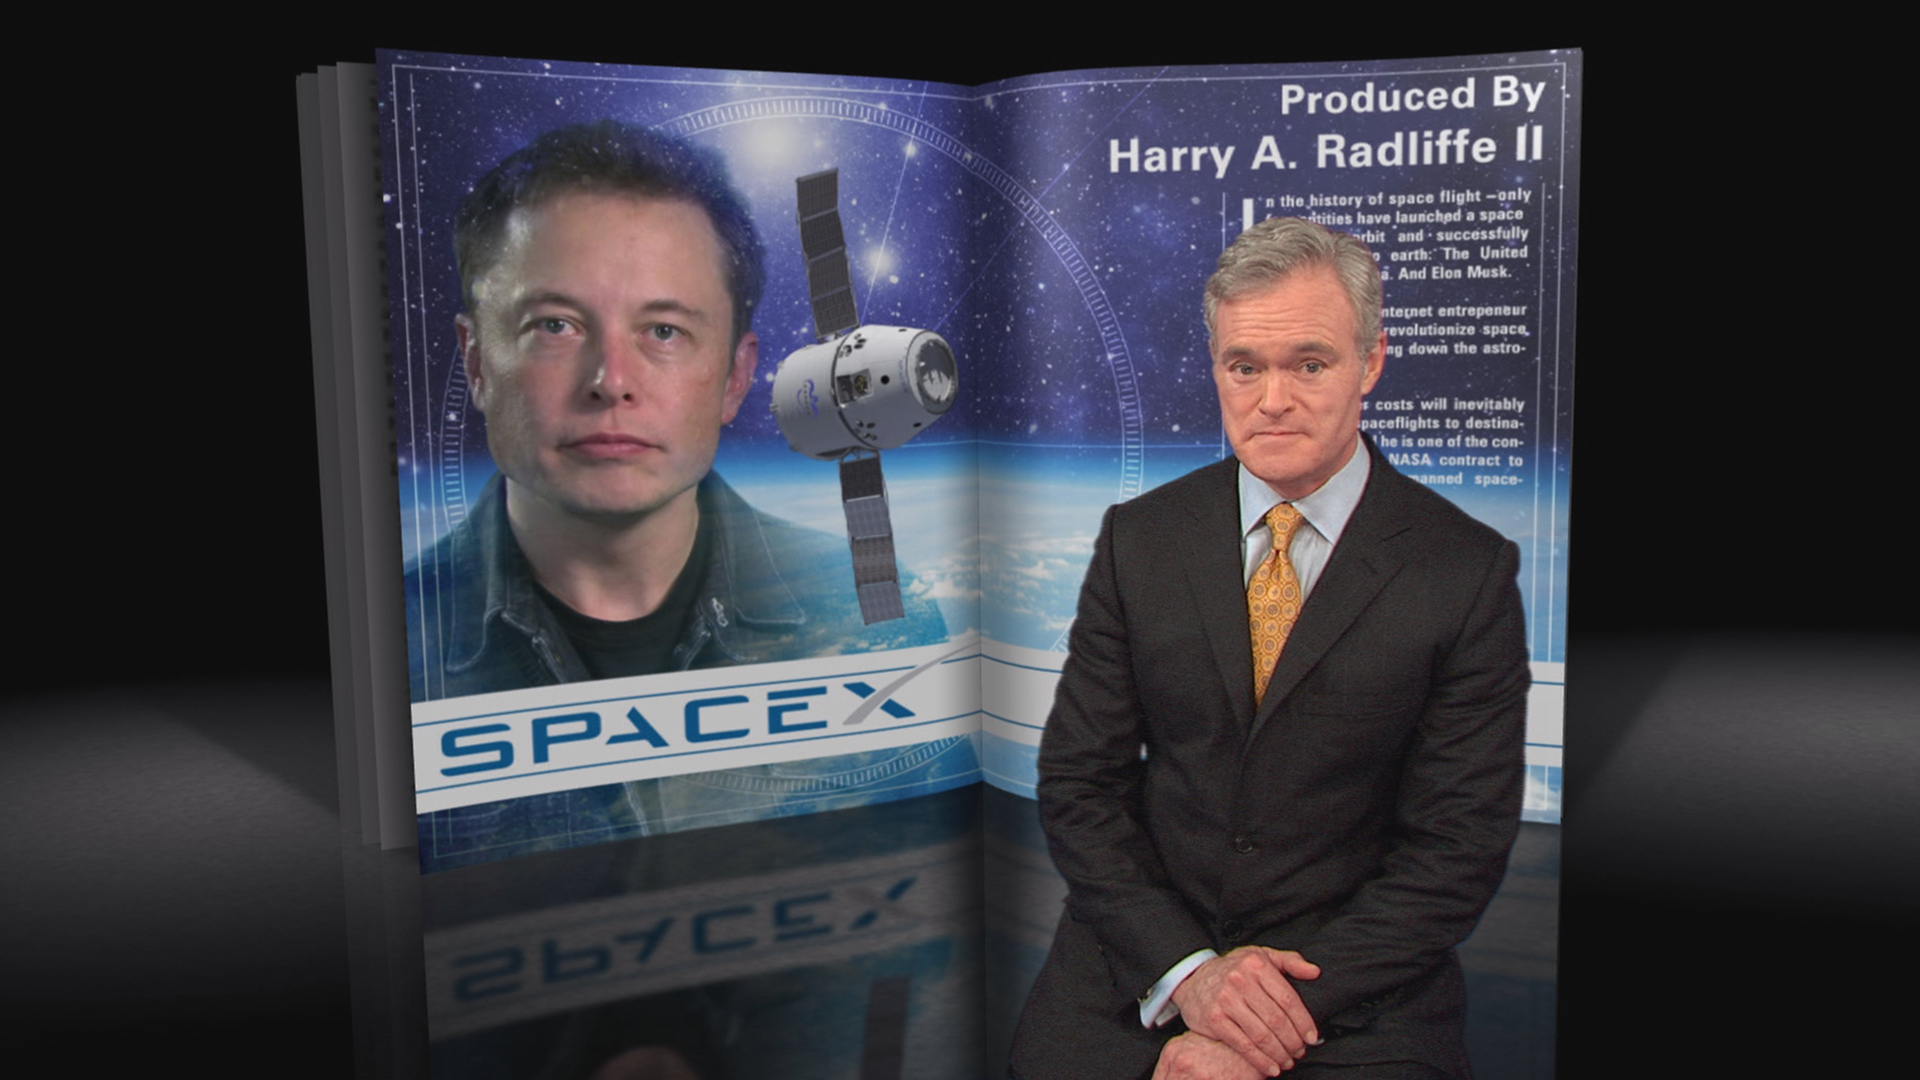 Watch 60 Minutes Overtime: 2012: SpaceX: Elon Musk's race to space - Full  show on CBS All Access